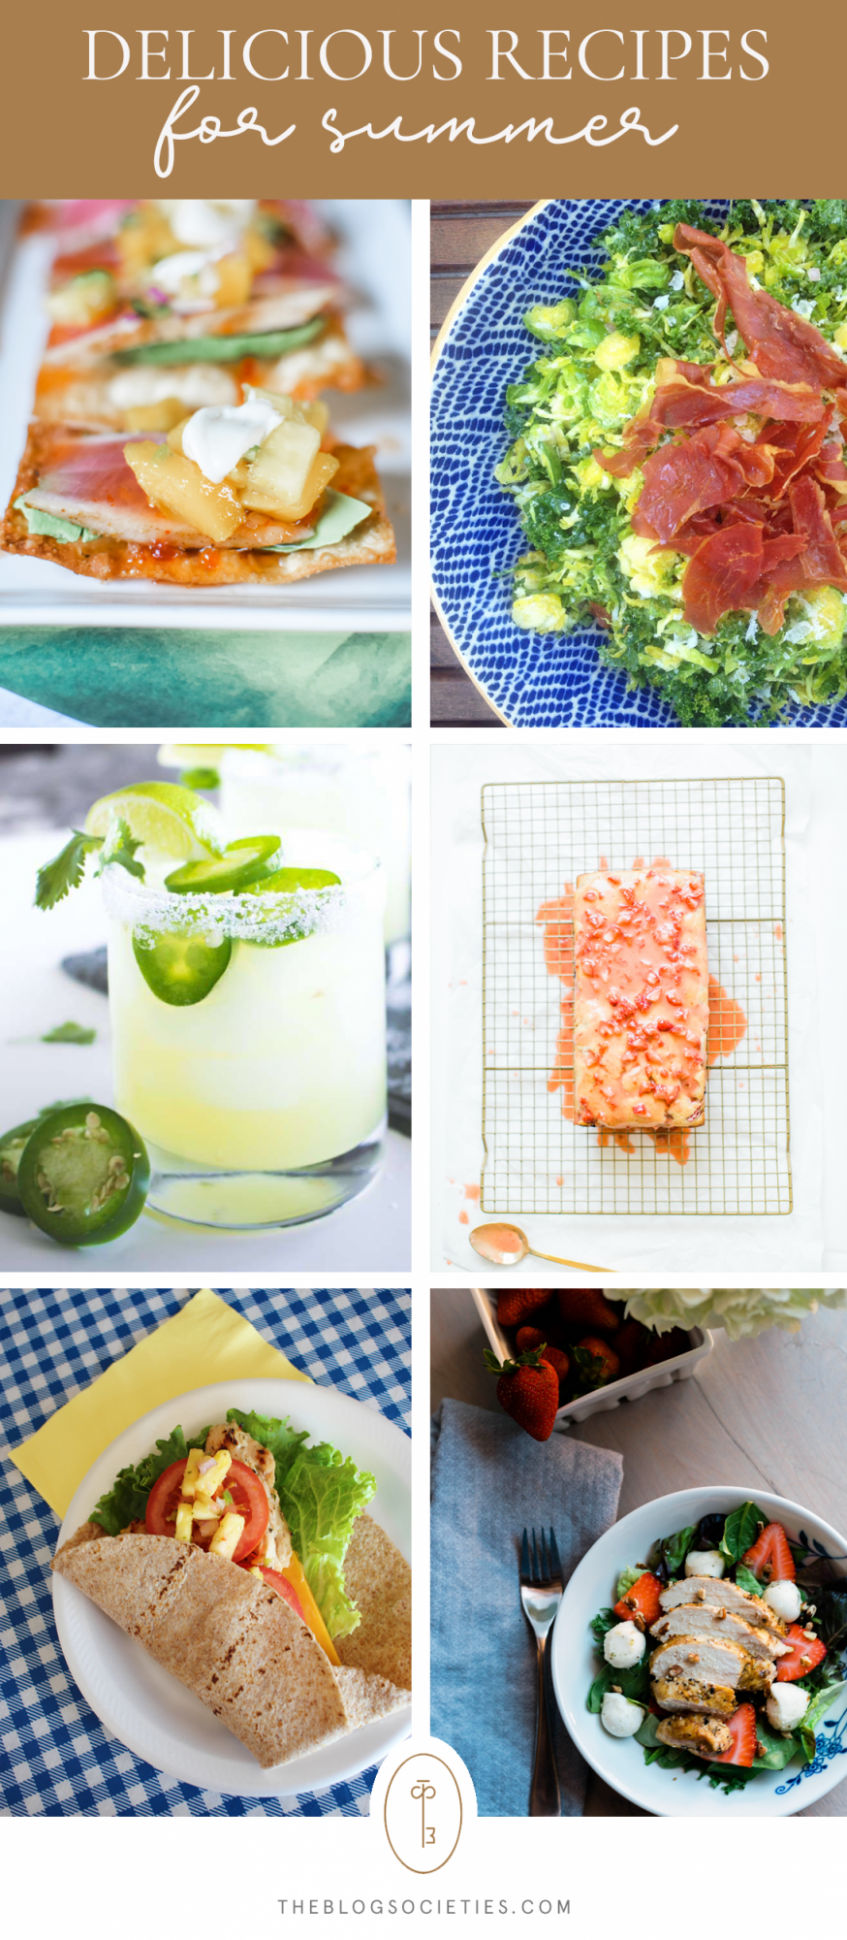 The Best Recipes To Try This Summer - The Blog Societies - Summer Recipes Blog